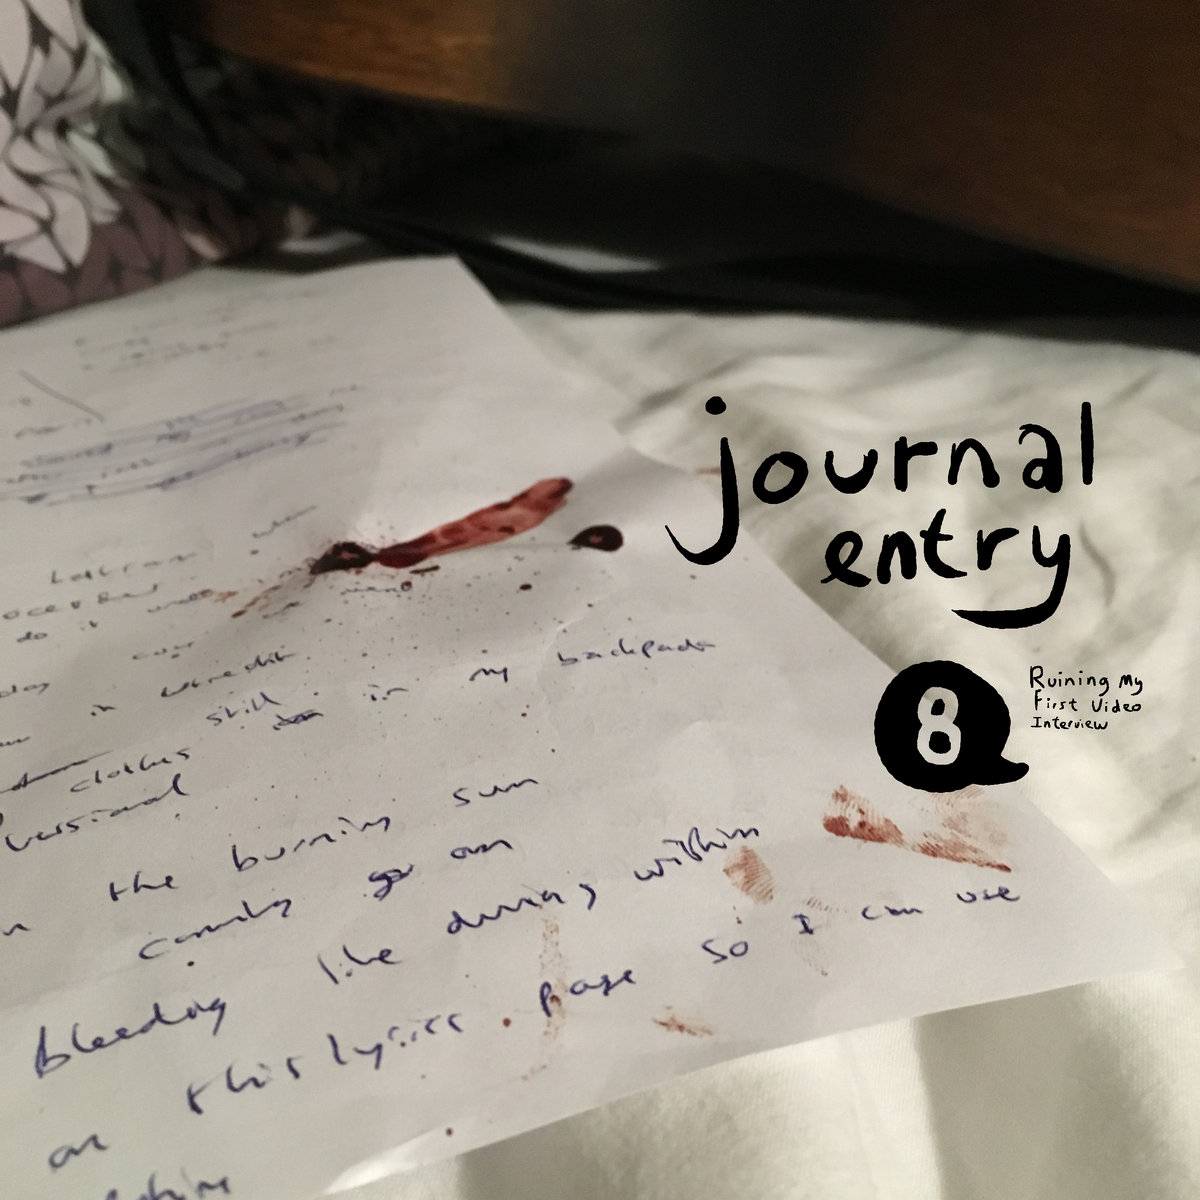 Journal Entry 8: Ruining My First Video Interview